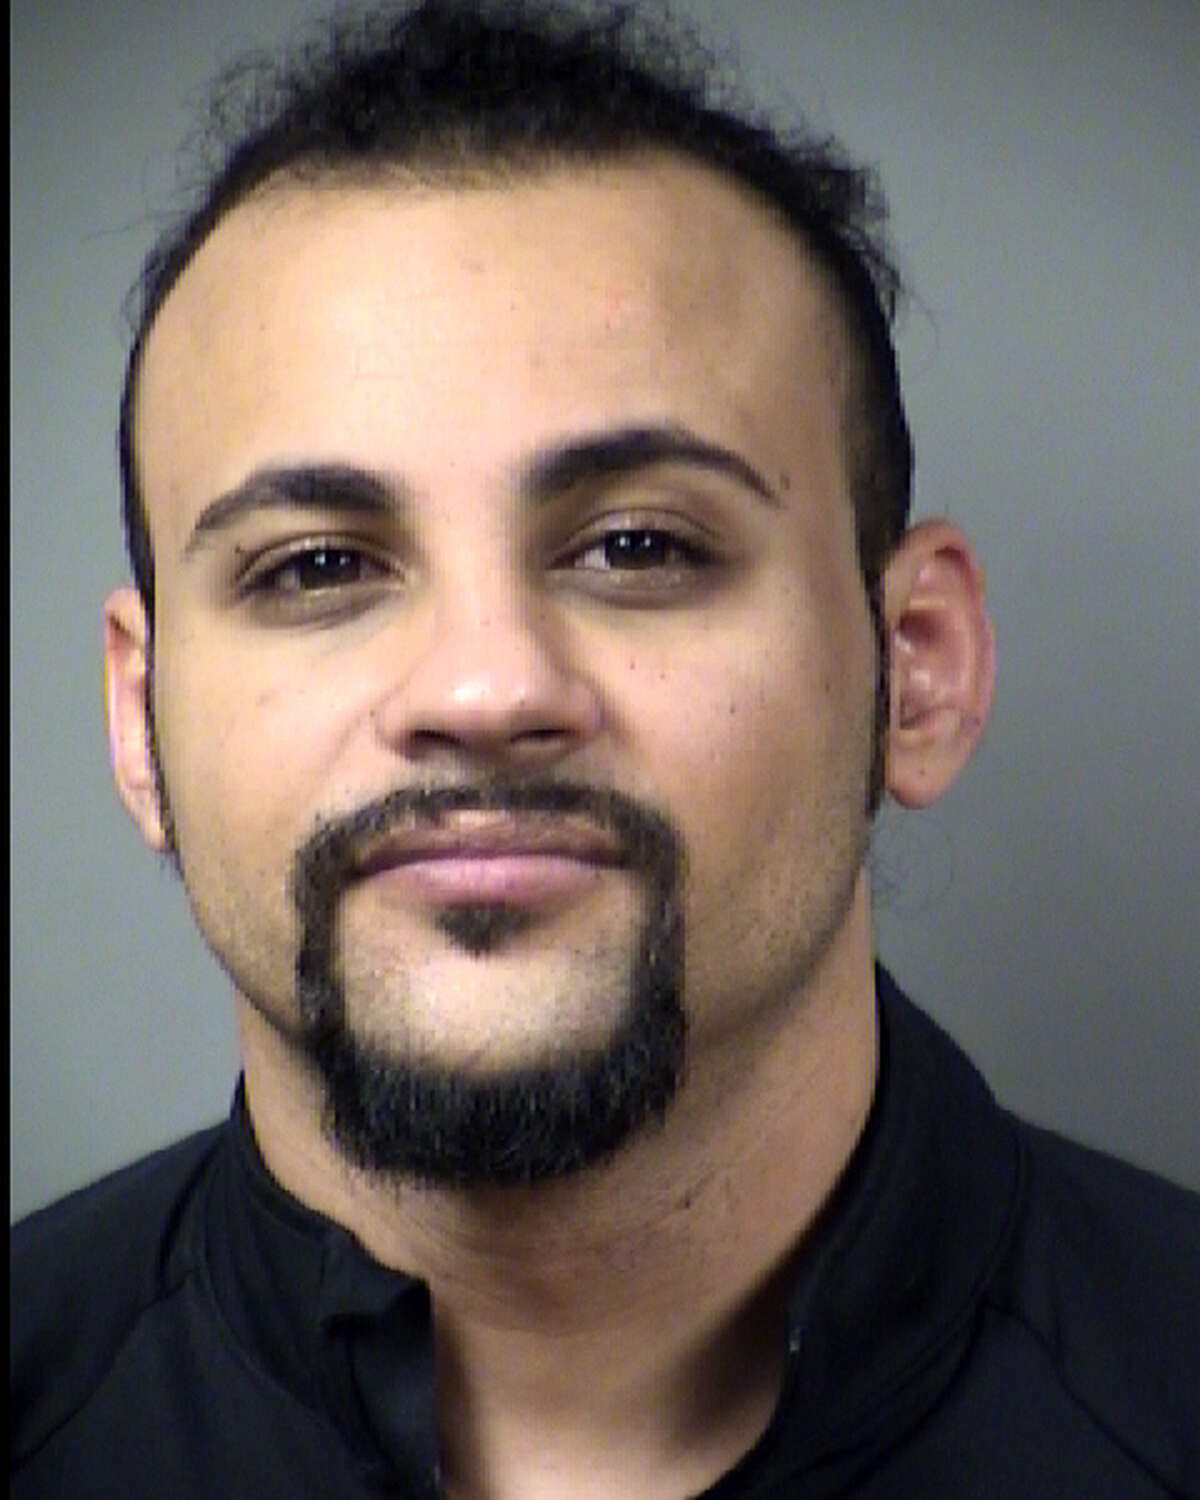 Bishoy Mina Elkhaliny, 30, is accused of sexual assault and aggravated assault causing serious bodily injury.